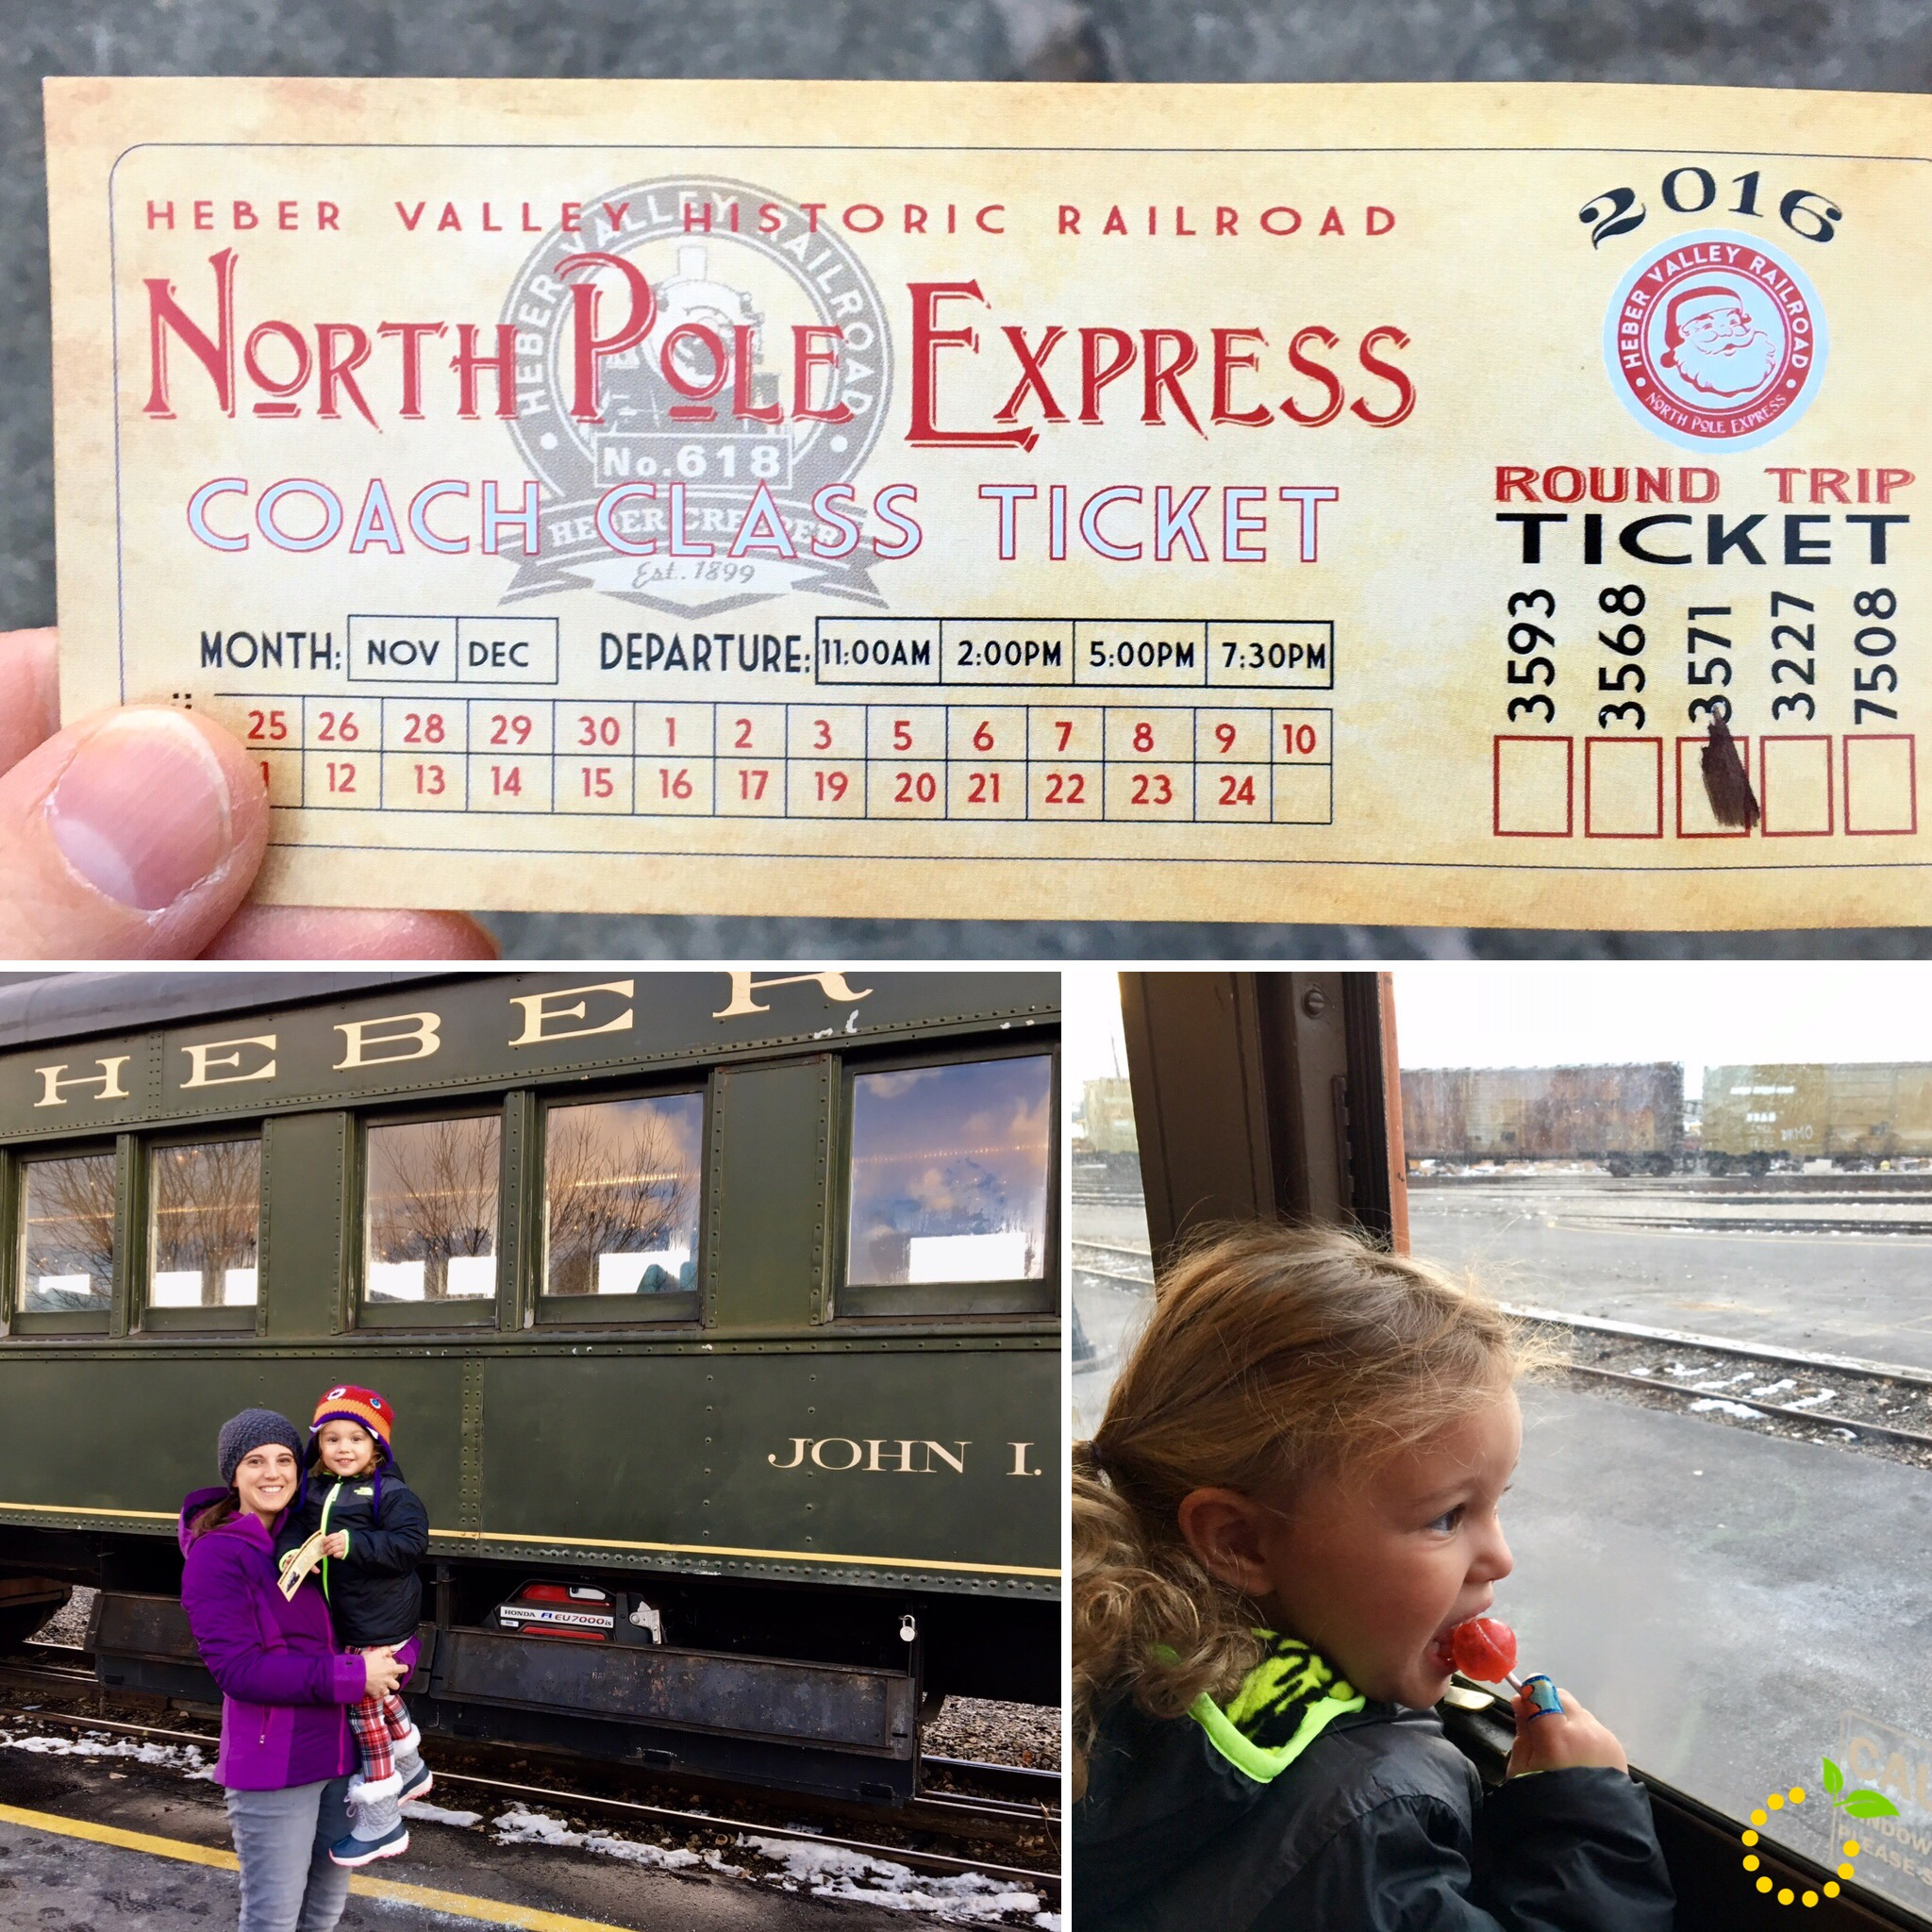 North Pole Ticket sweetlemonmade.com